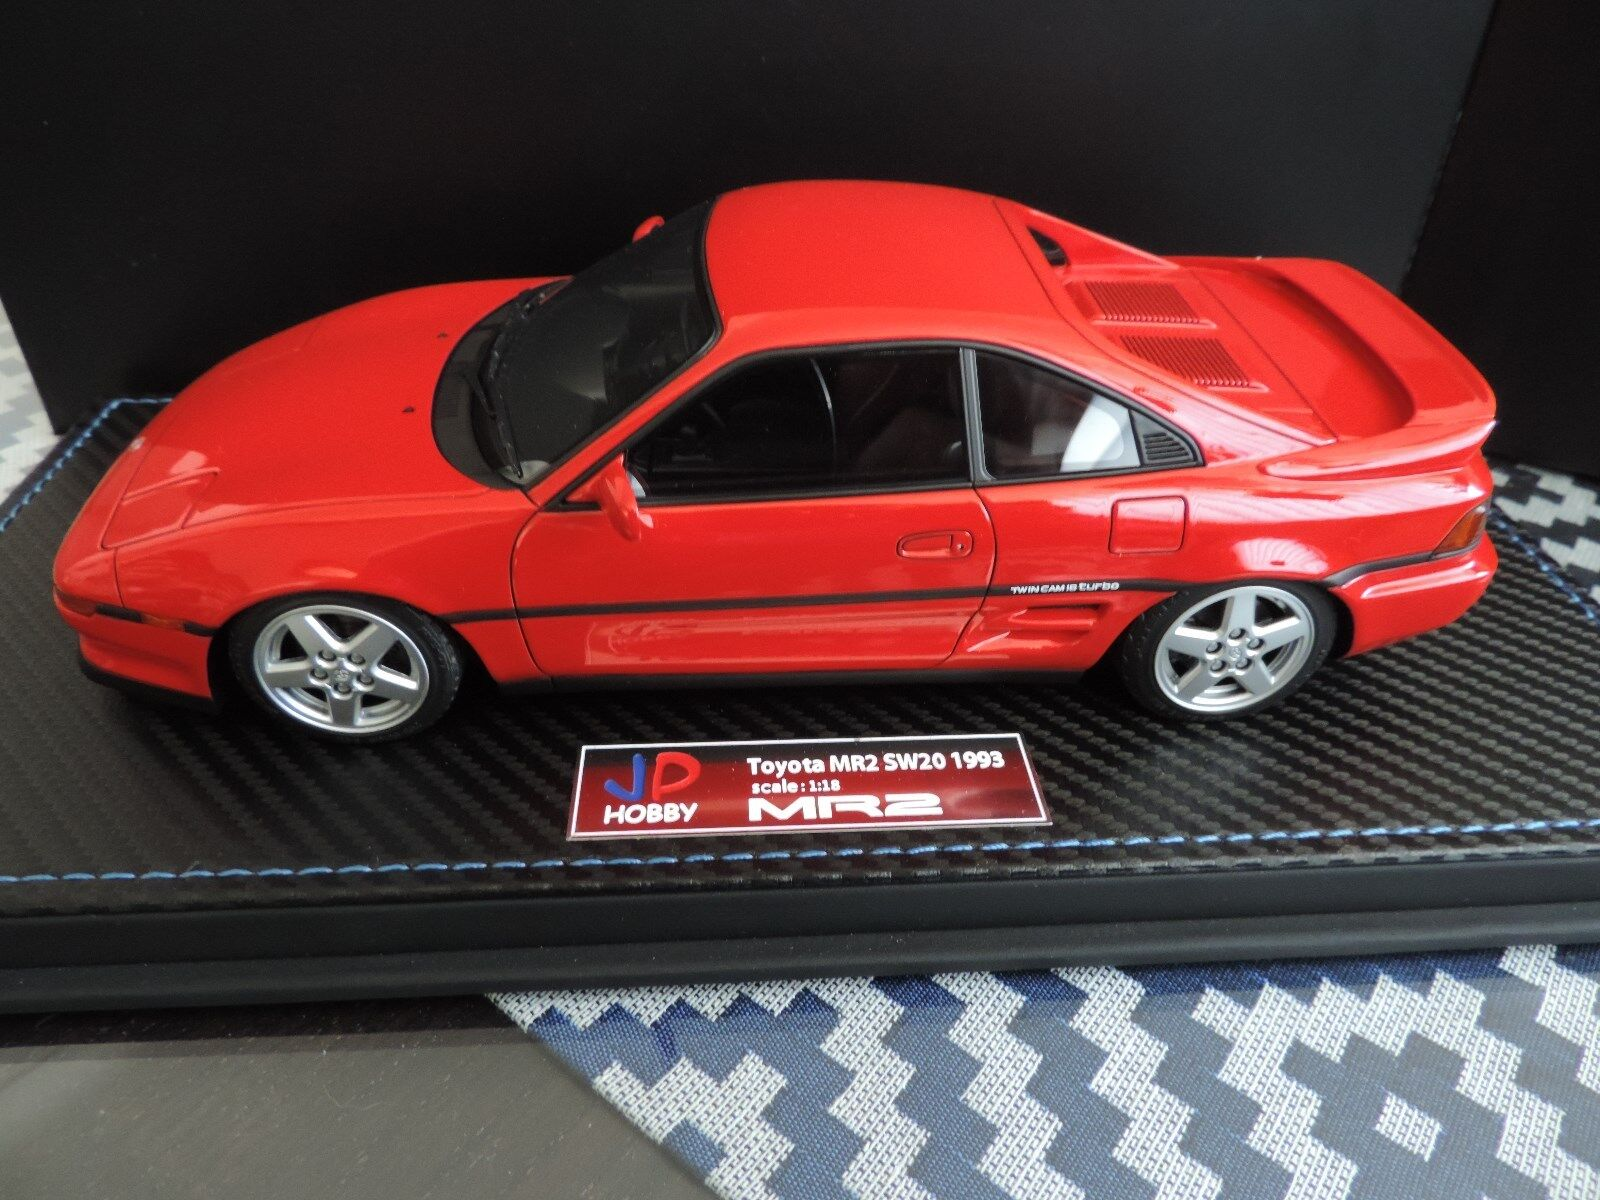 TOYOTA MR2 MR 2 SW20 1993 TURBO ROUGE JP HOBBY 1 18 NO OTTOMOBILE LookSmart BBR